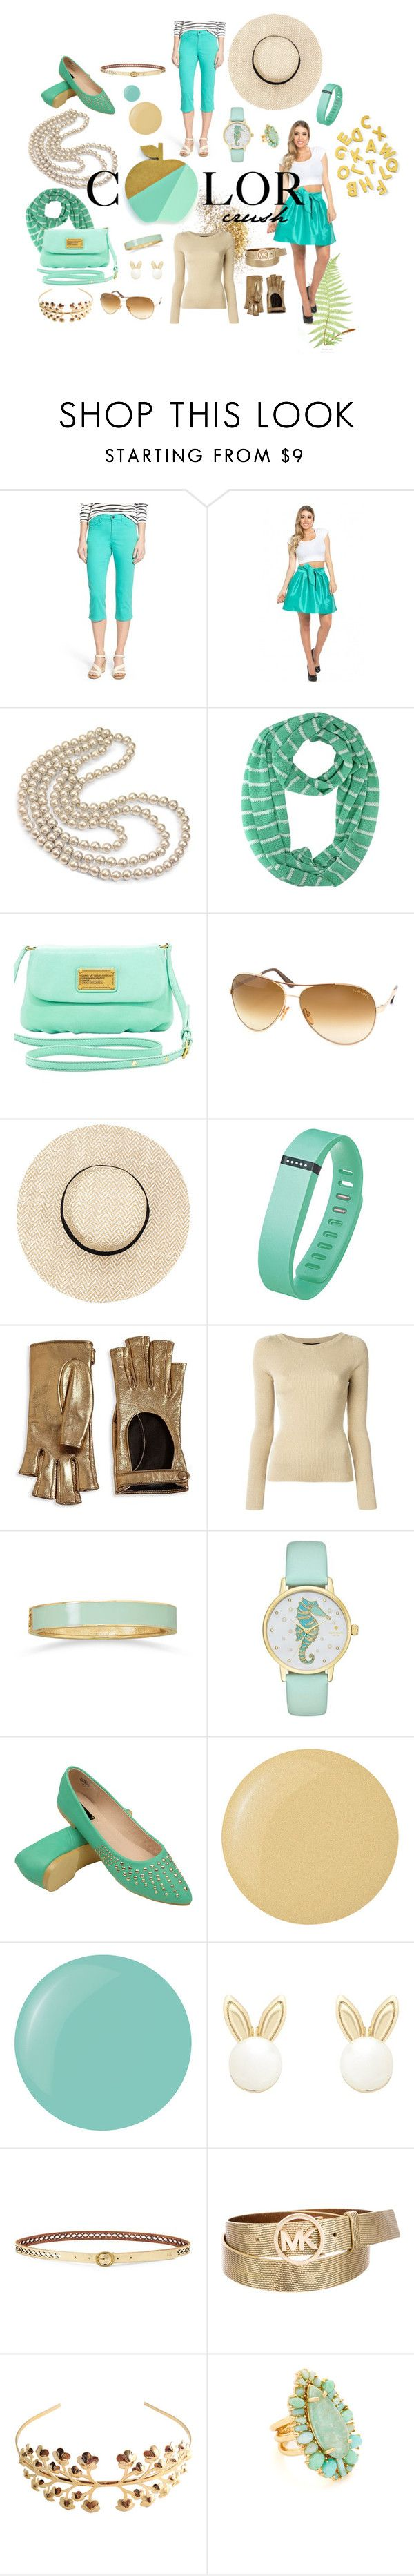 """Color crush - mint & gold"" by iwona-estera on Polyvore featuring NYDJ, Sweet Romance, Marc by Marc Jacobs, Tom Ford, Fitbit, Gucci, Dolce&Gabbana, BillyTheTree, Kate Spade and Butter London"